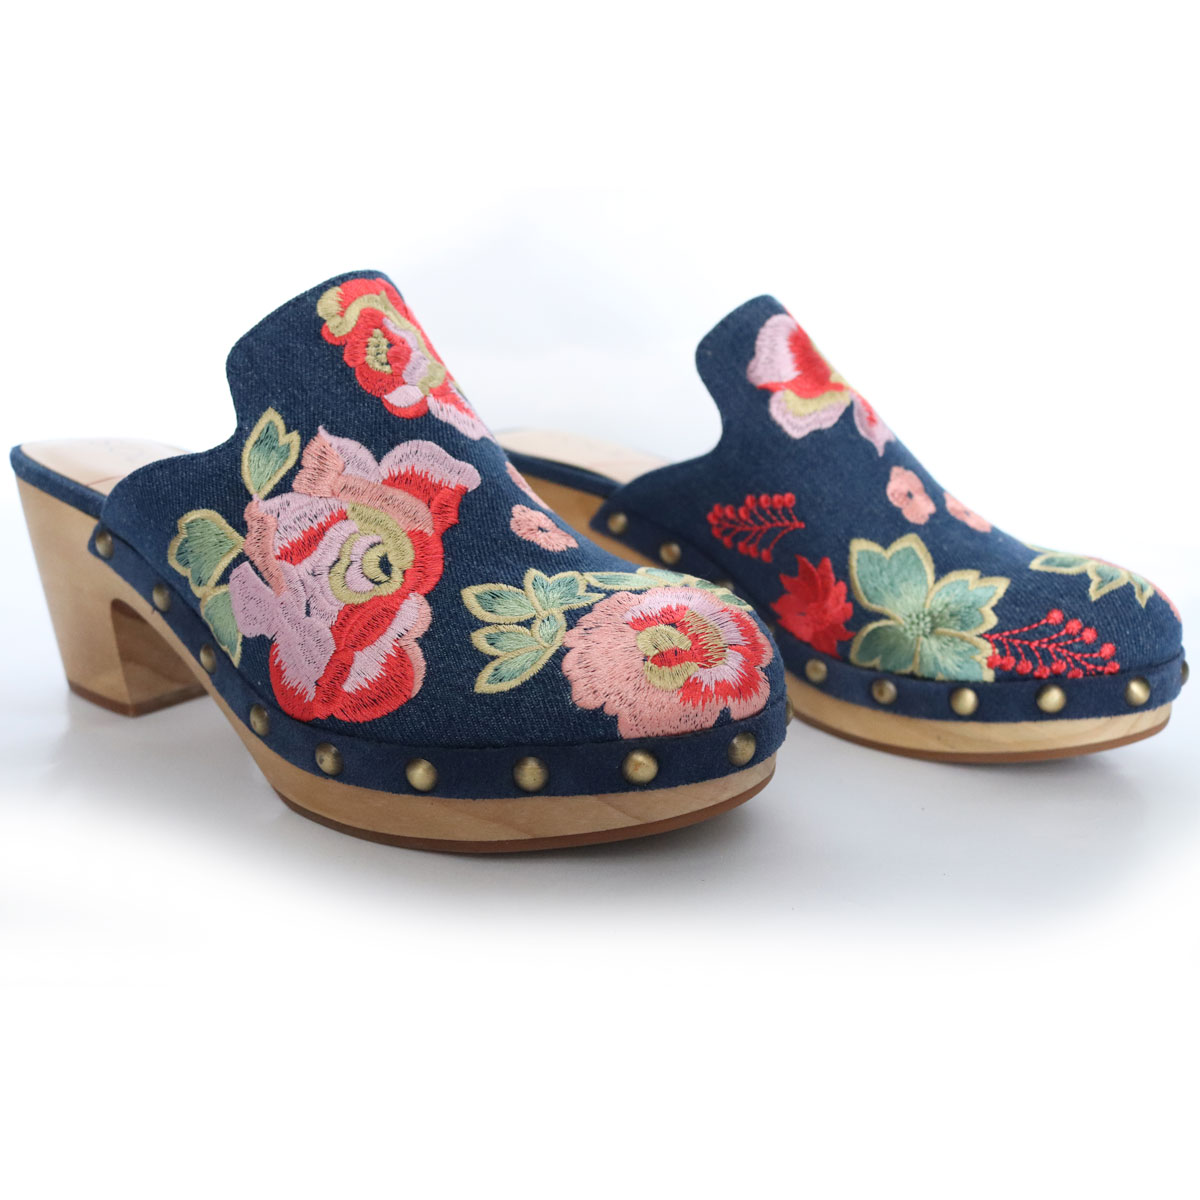 Madelina Boho Clogs Denim Floral Embroidered Studded